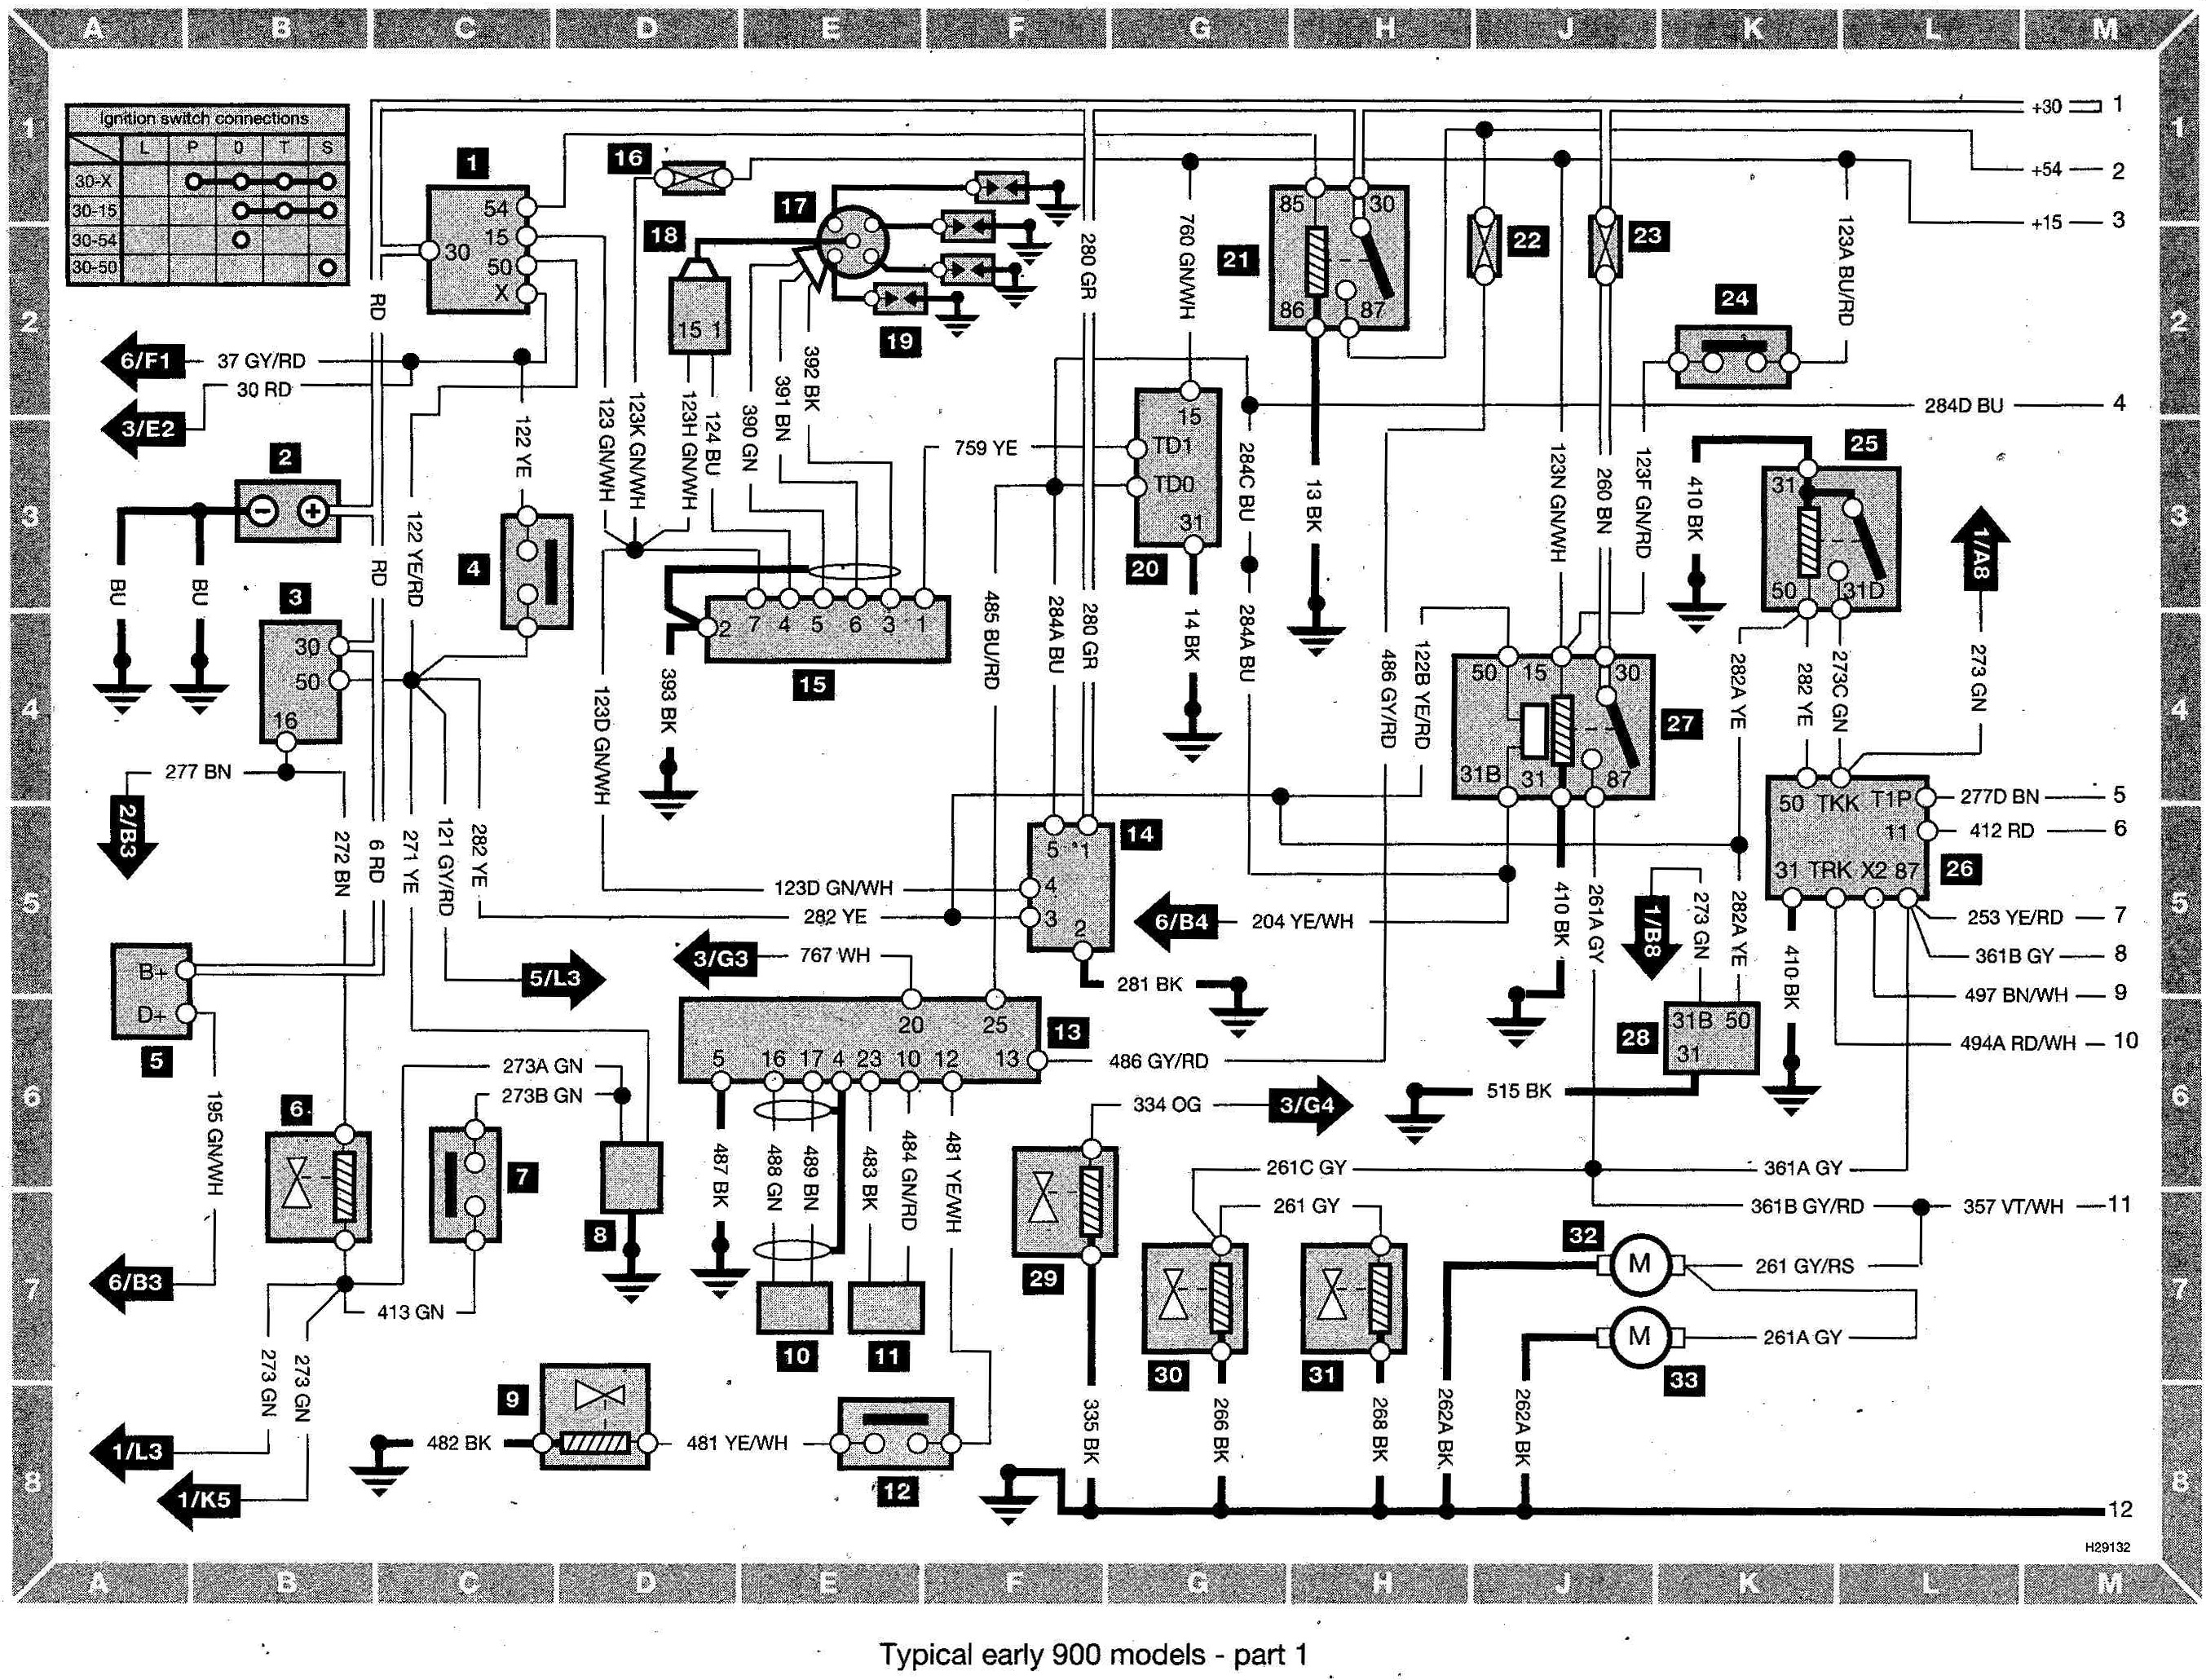 saab 9 3 fuel pump wiring diagram 14 11 artatec automobile de \u20222004 saab 9 3 fuel pump wiring diagram wiring library rh 70 boogweb nl 2003 saab 9 3 wiring diagram saab 9 3 parts diagram